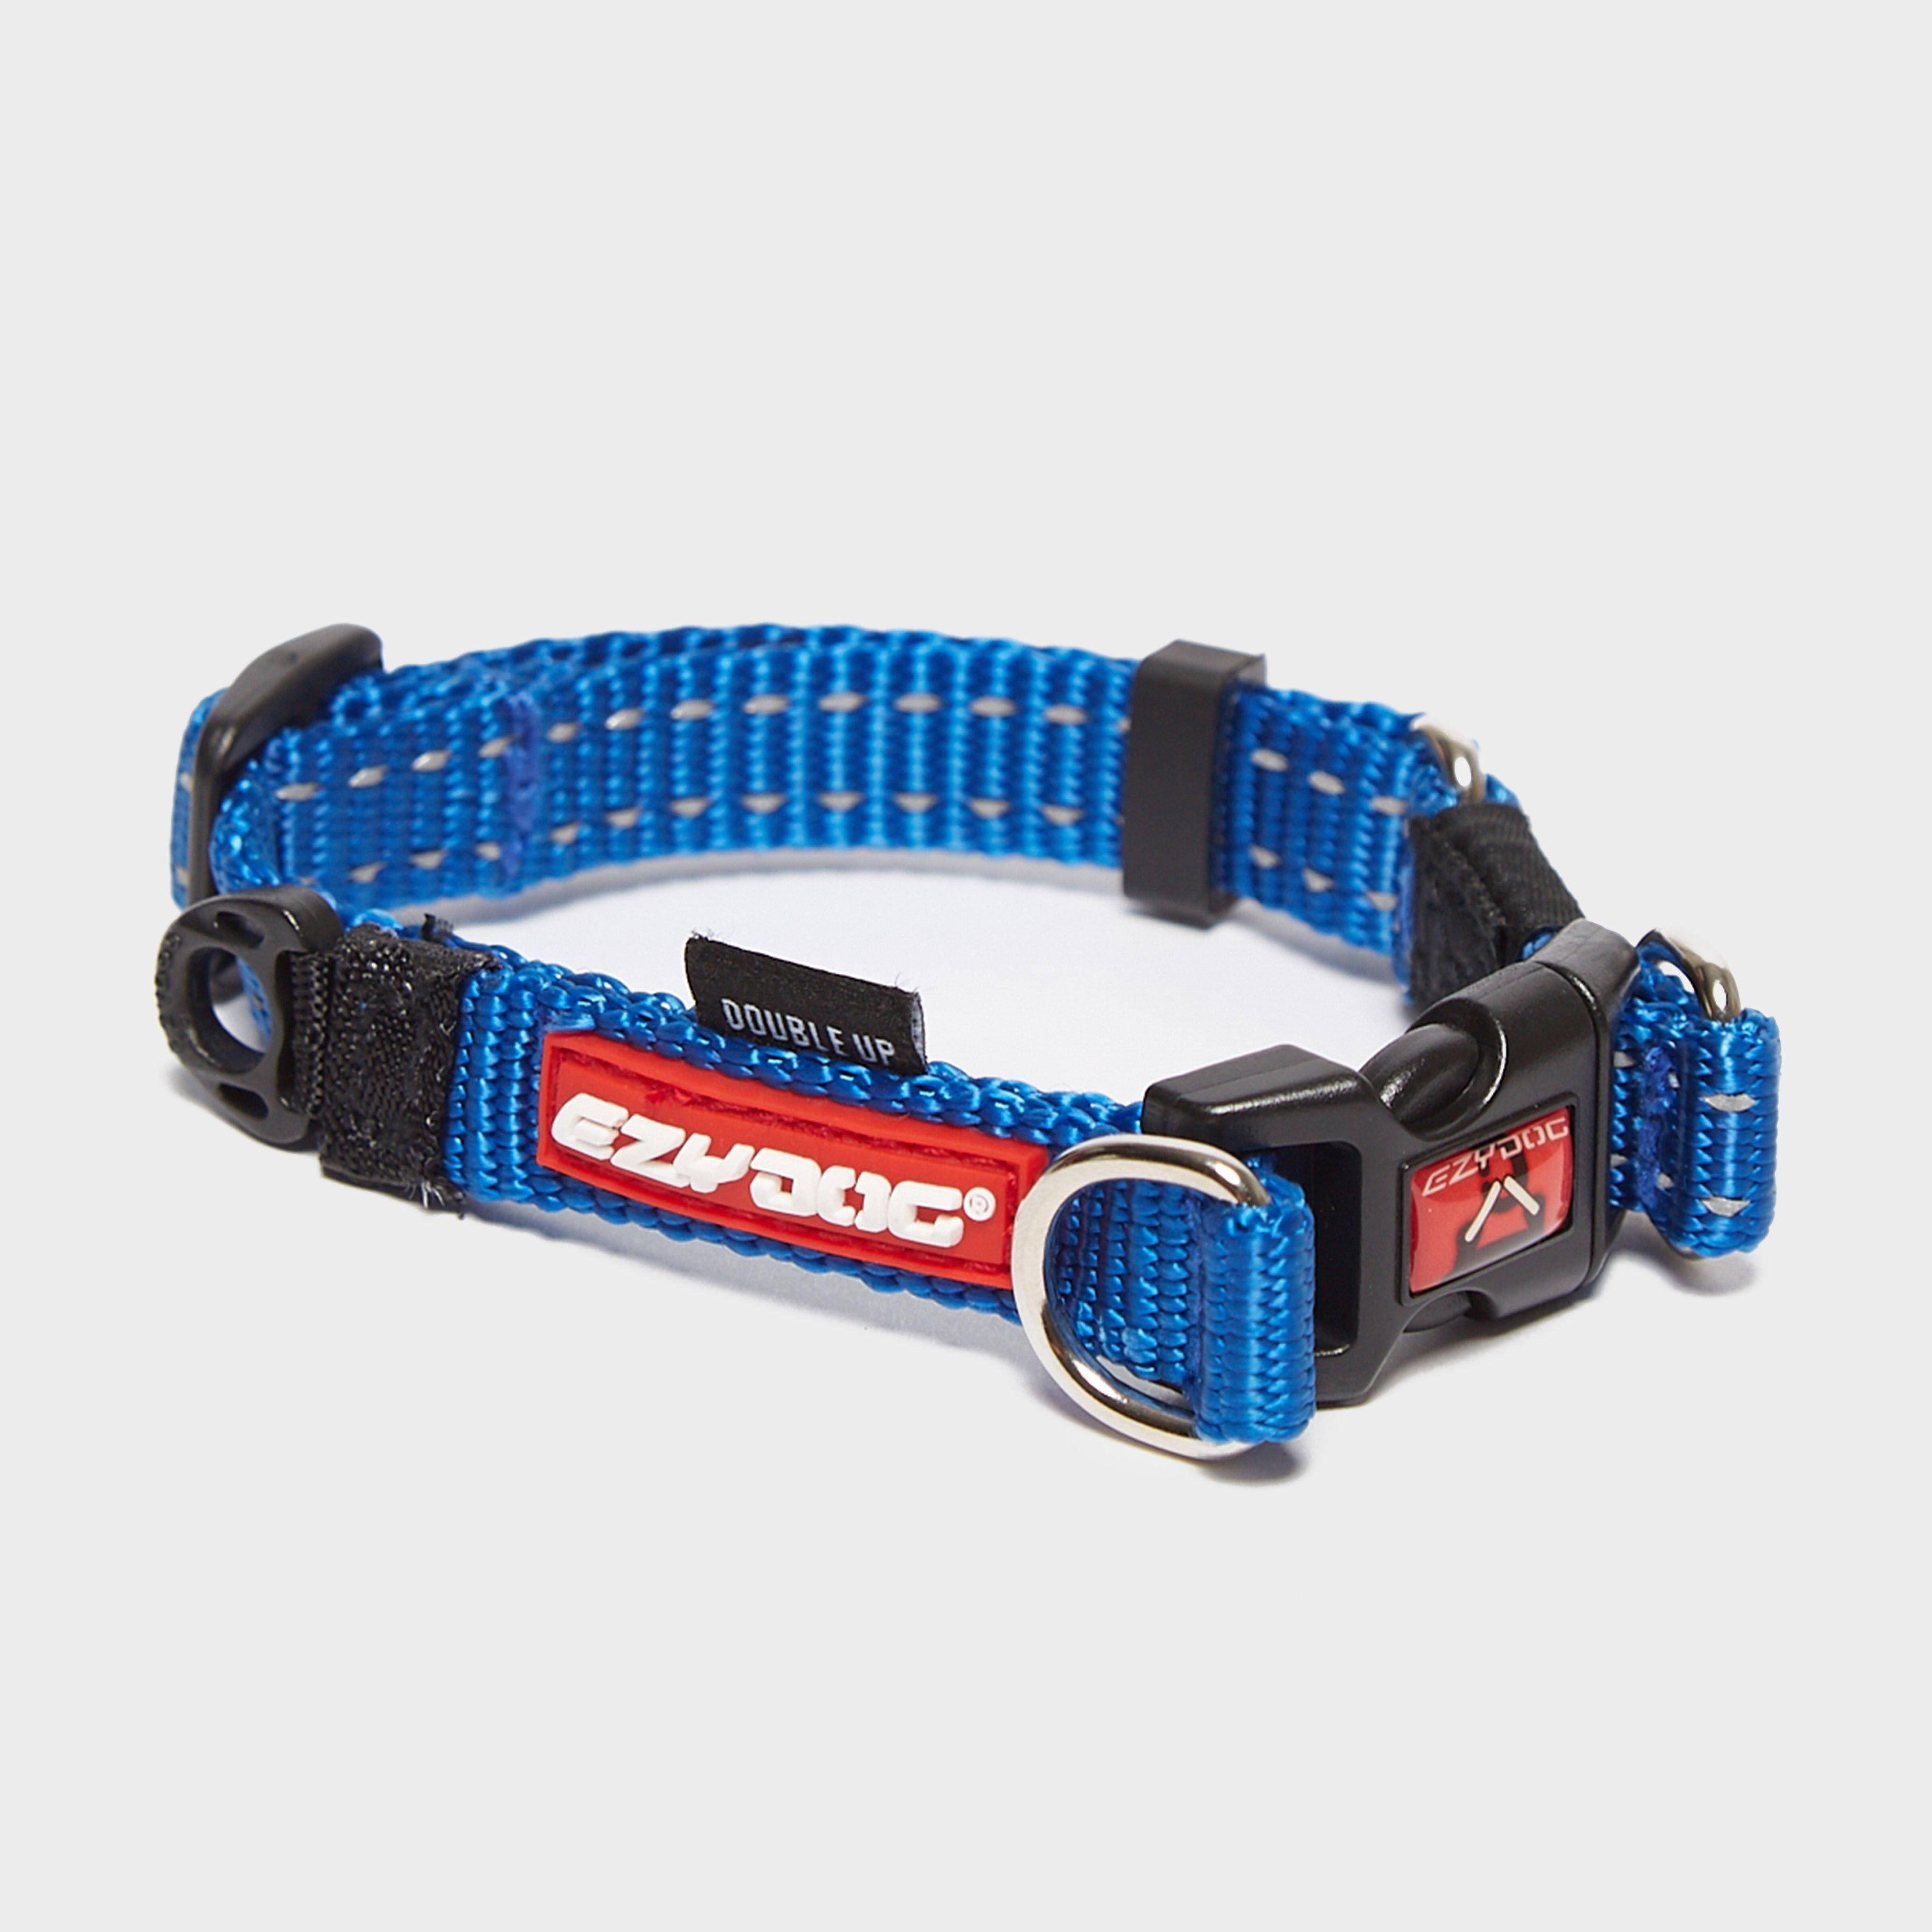 Image of Ezy-Dog Double Up Collar (Small) - Mbl/Mbl, MBL/MBL